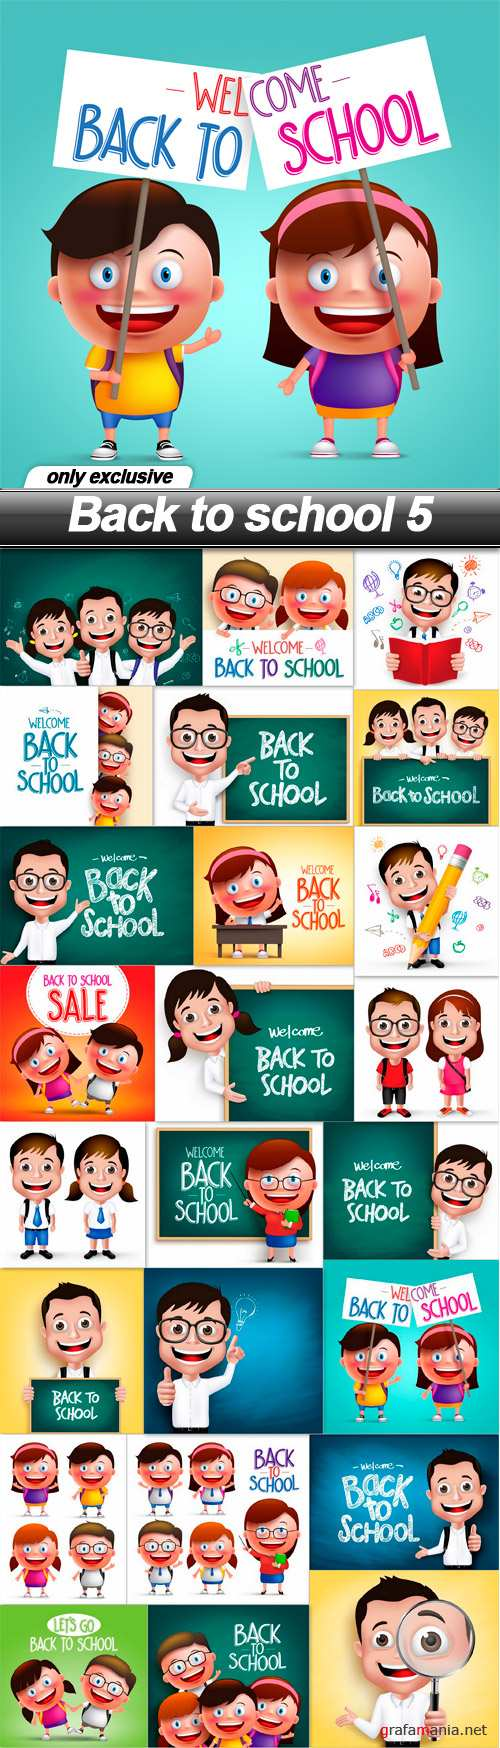 Back to school 5